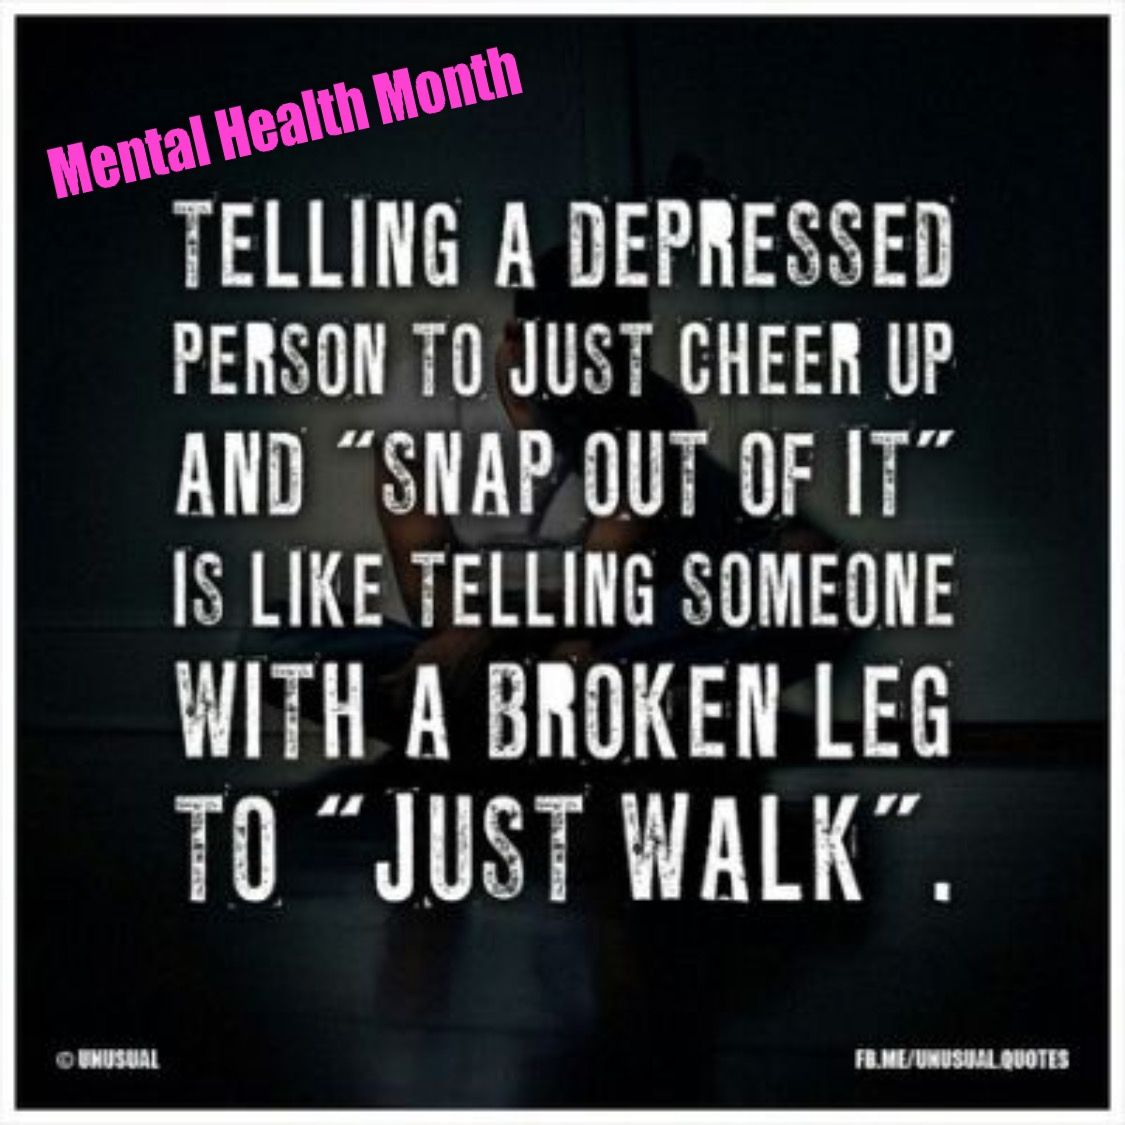 Pin On Mental Health Month